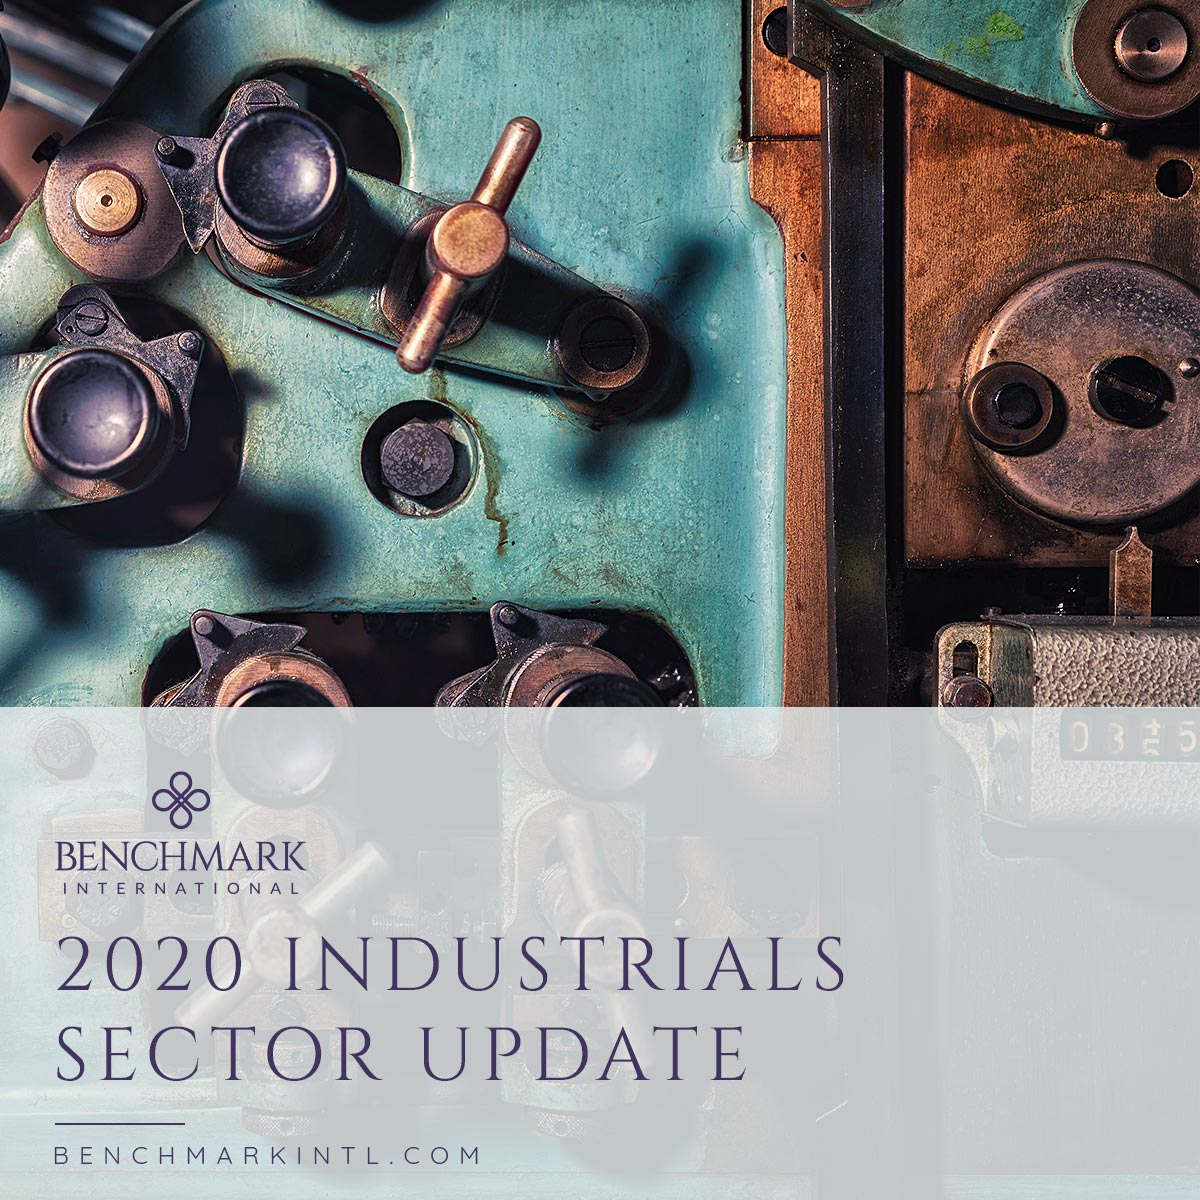 2020_Industrials_Sector_Update_Social